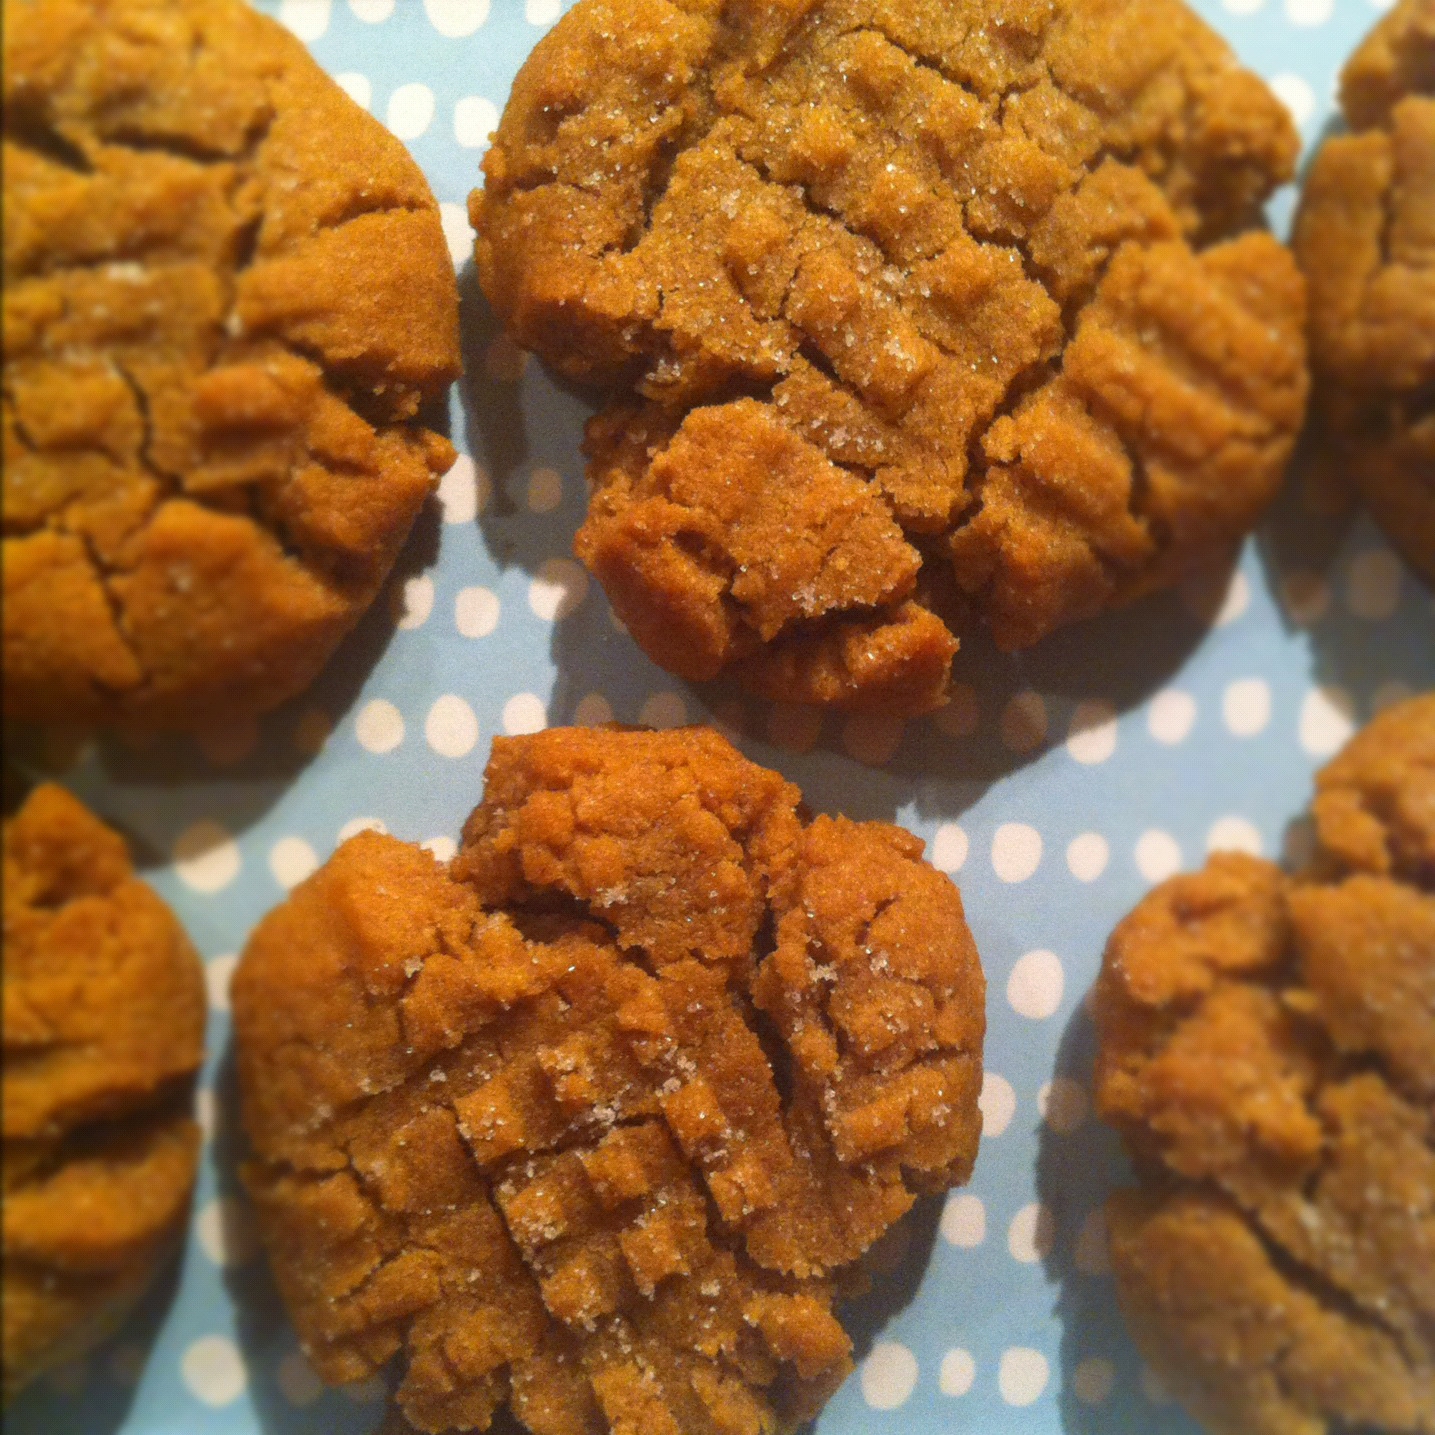 re-post: flourless peanut butter cookies